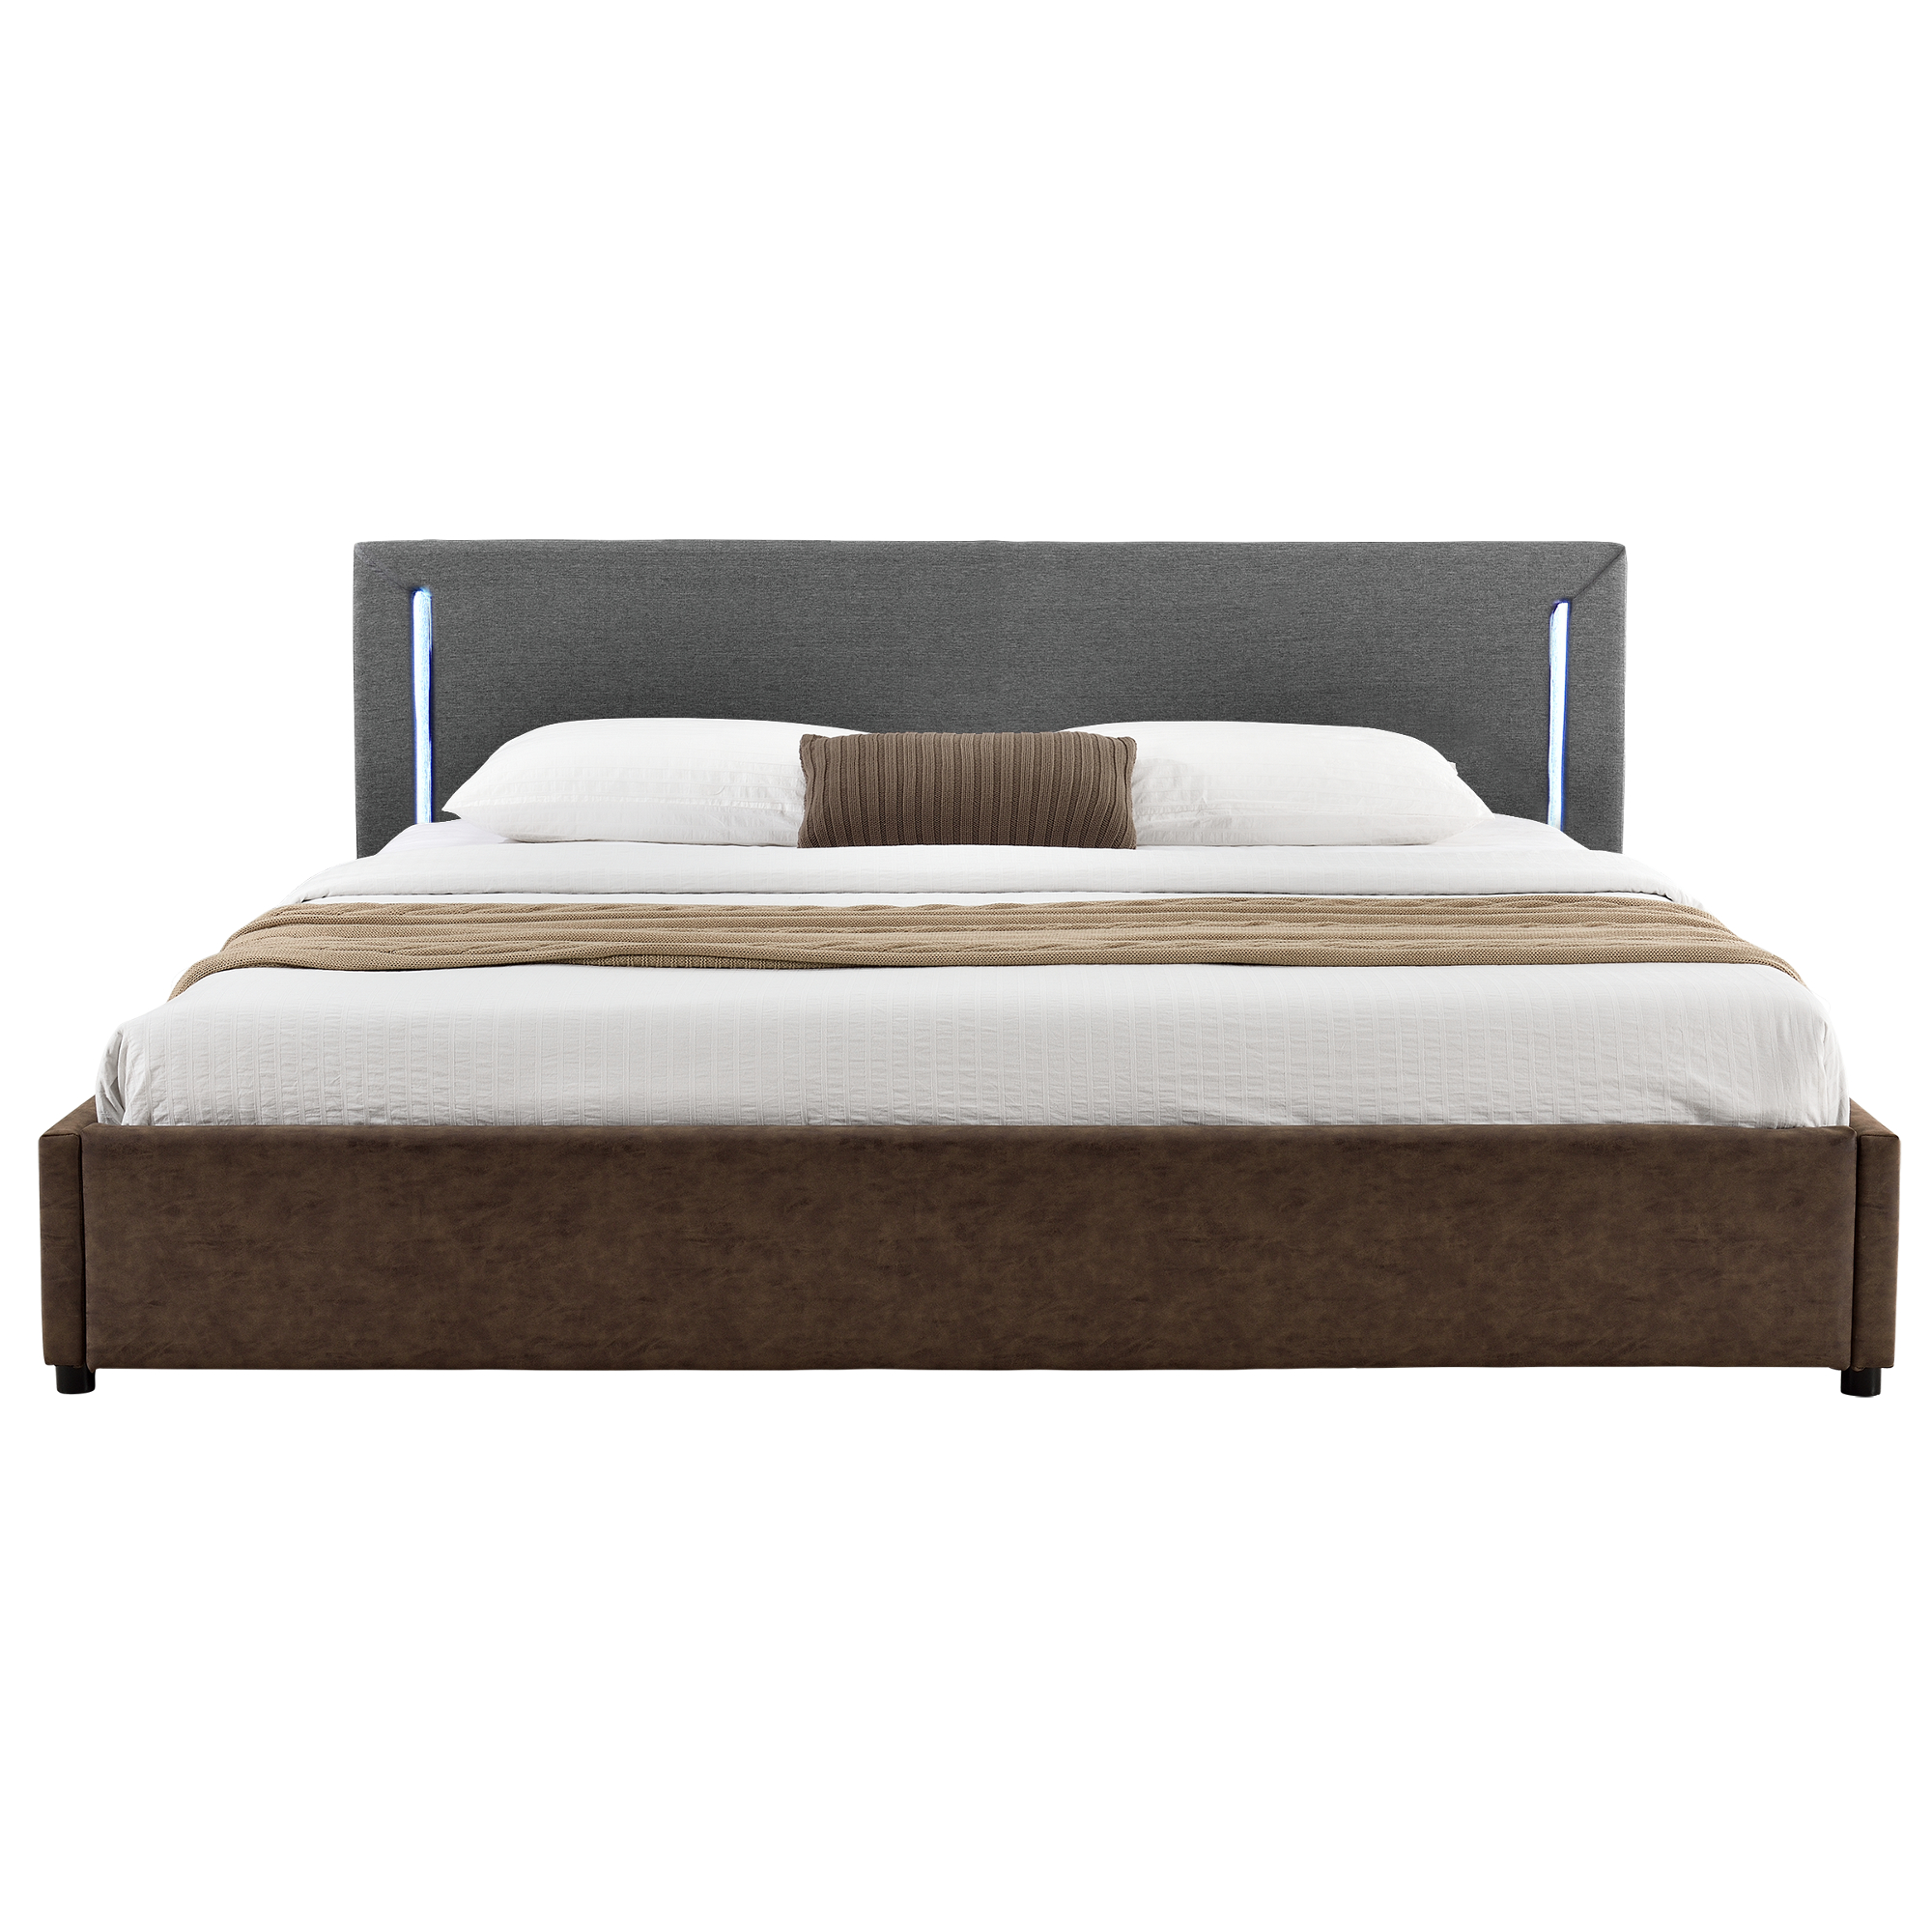 my bed led lit capitonn 140x200cm gris marron tissu. Black Bedroom Furniture Sets. Home Design Ideas